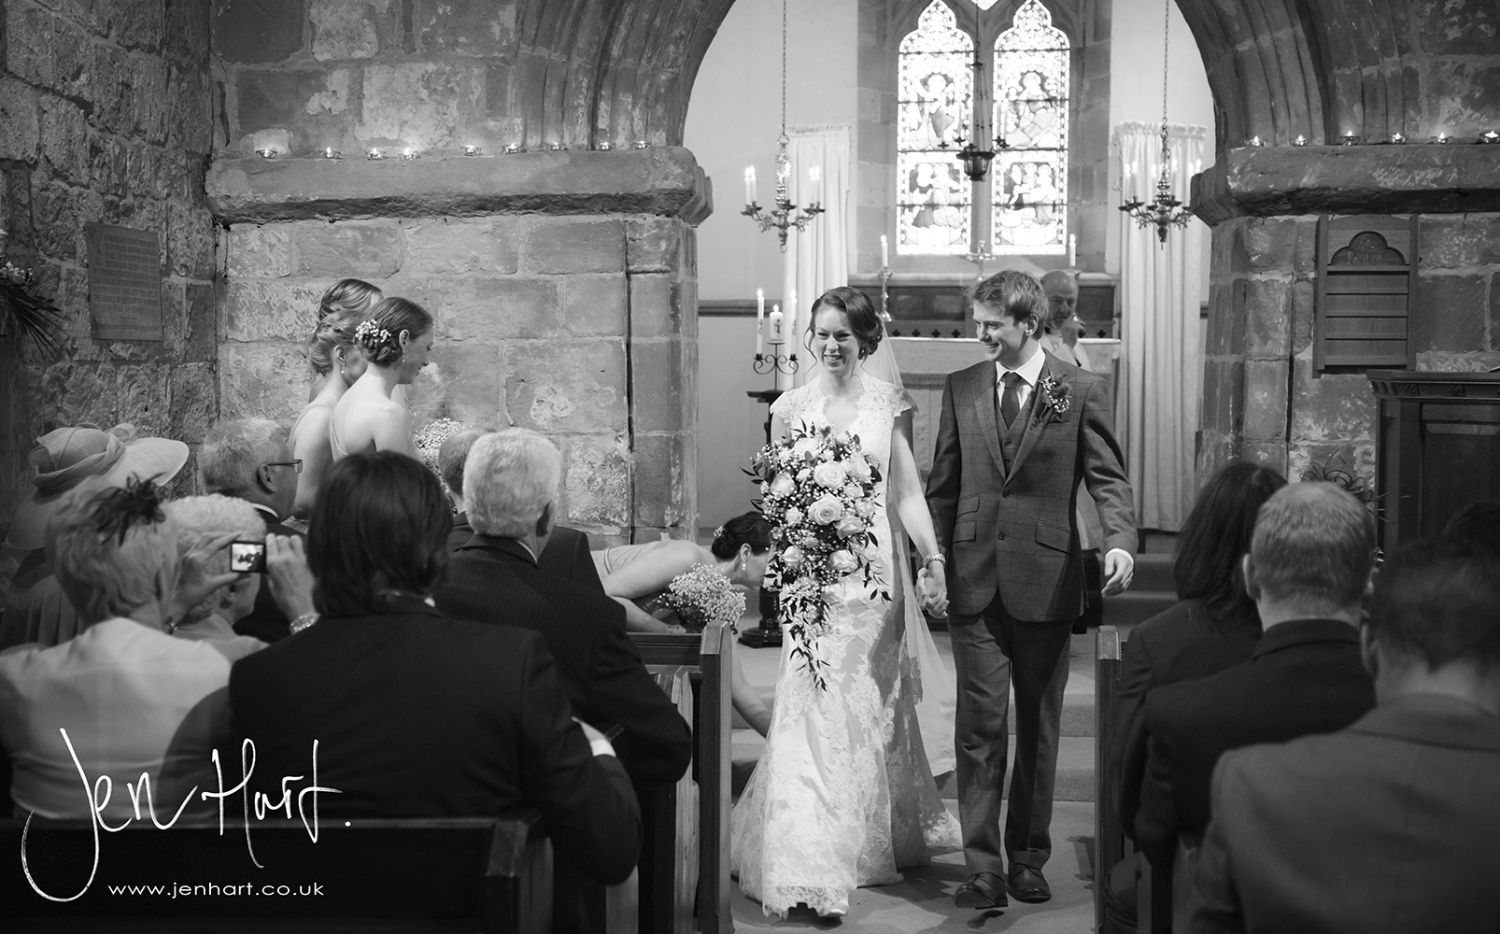 Photograph-Wedding-Whinstone-View_02May15_117